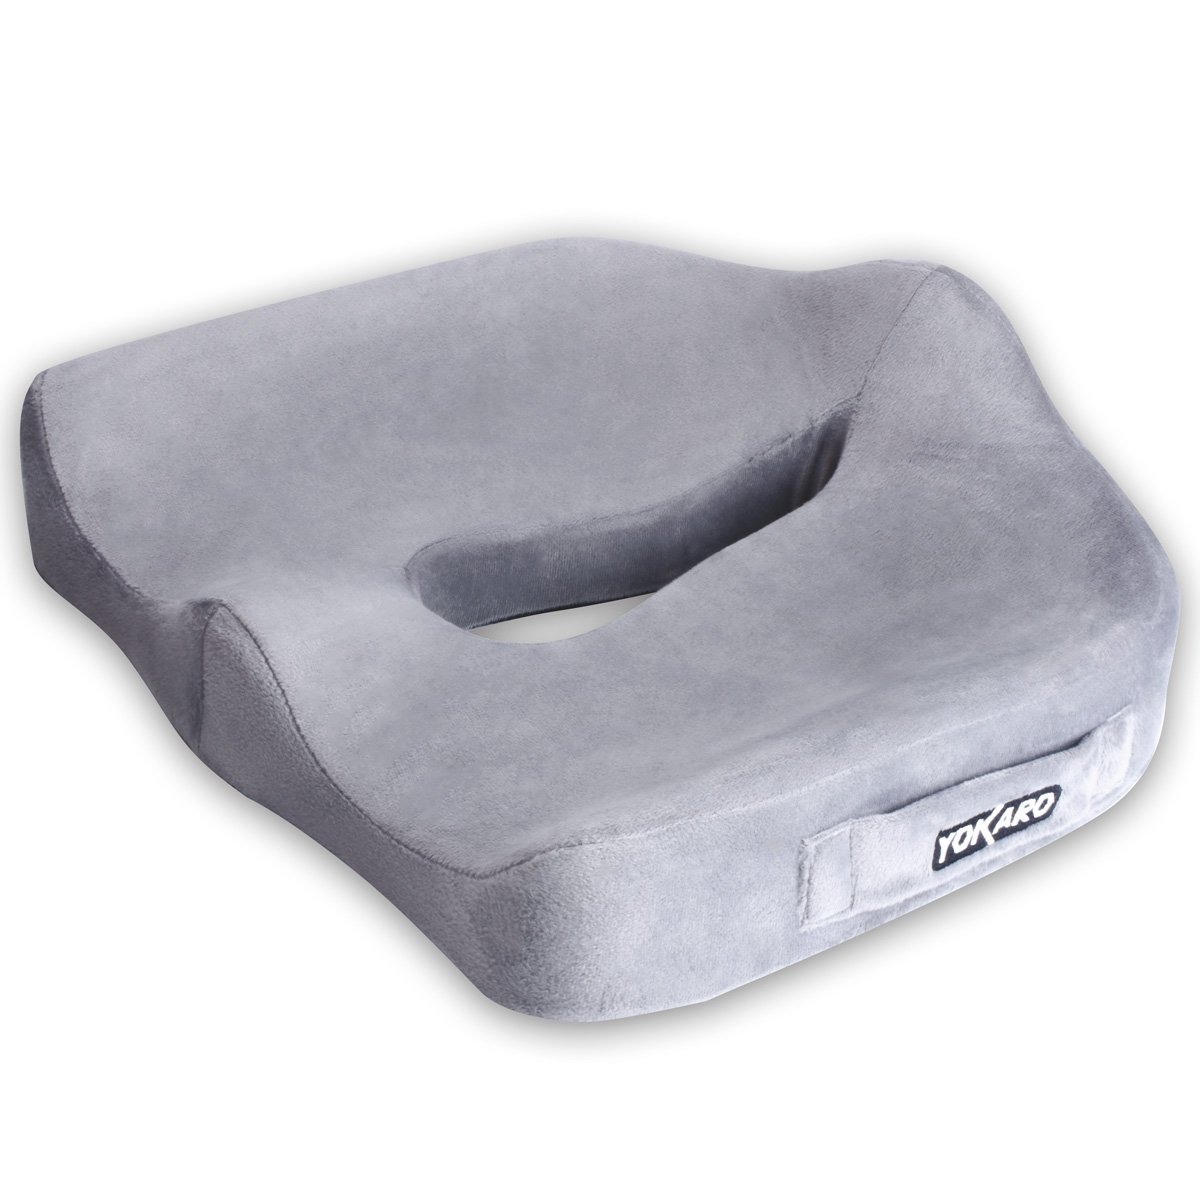 Yokaro Coccyx Seat Cushion, Posture Support Pillow for Wheelchair and Office Chair, Washable Cover (Gray)